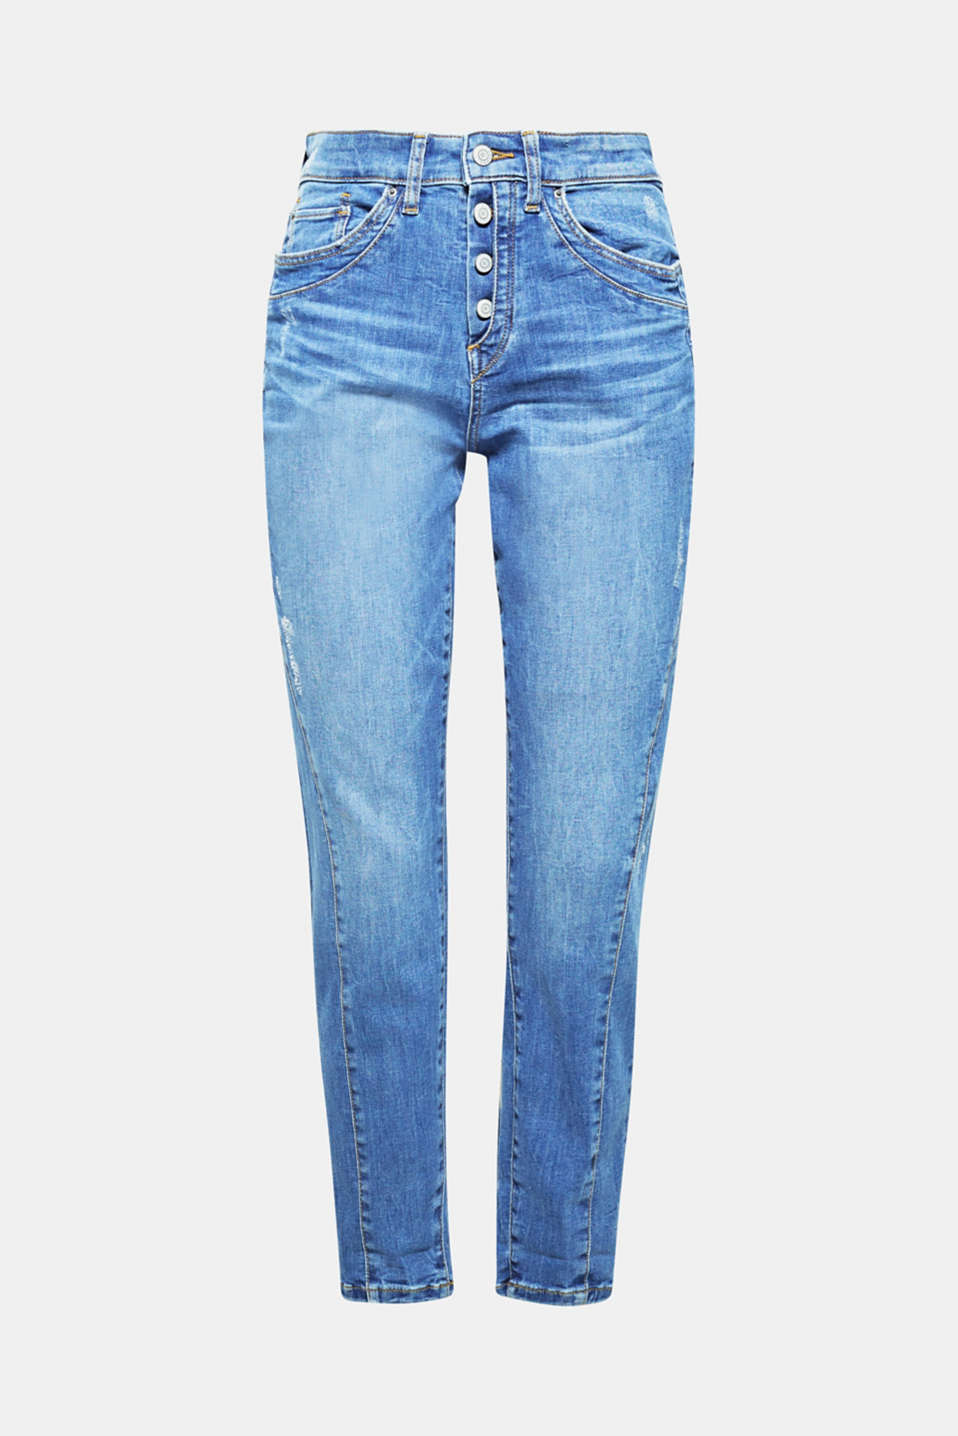 These trendy, ankle-length jeans in a casual finish come with distinctive darts and a button fly for a cool, laid-back look.